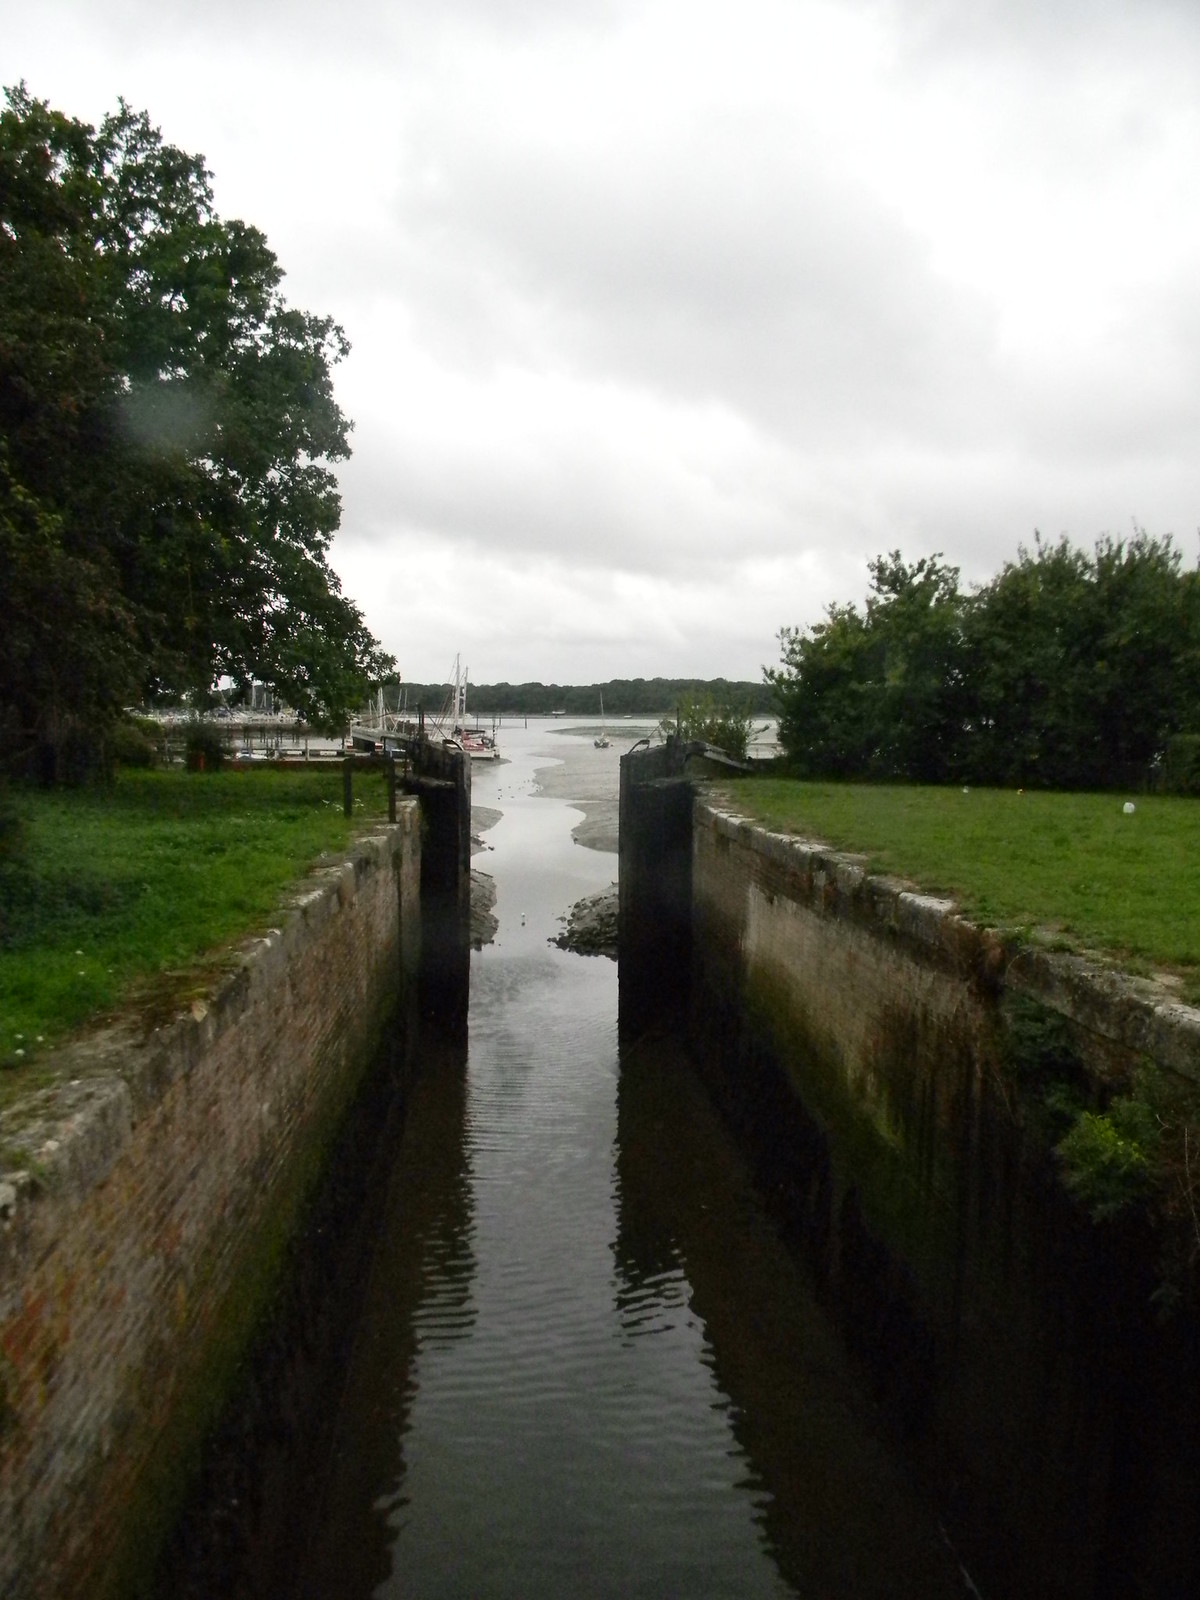 Sea lock, Chichester Ship Canal Chichester to West Wittering